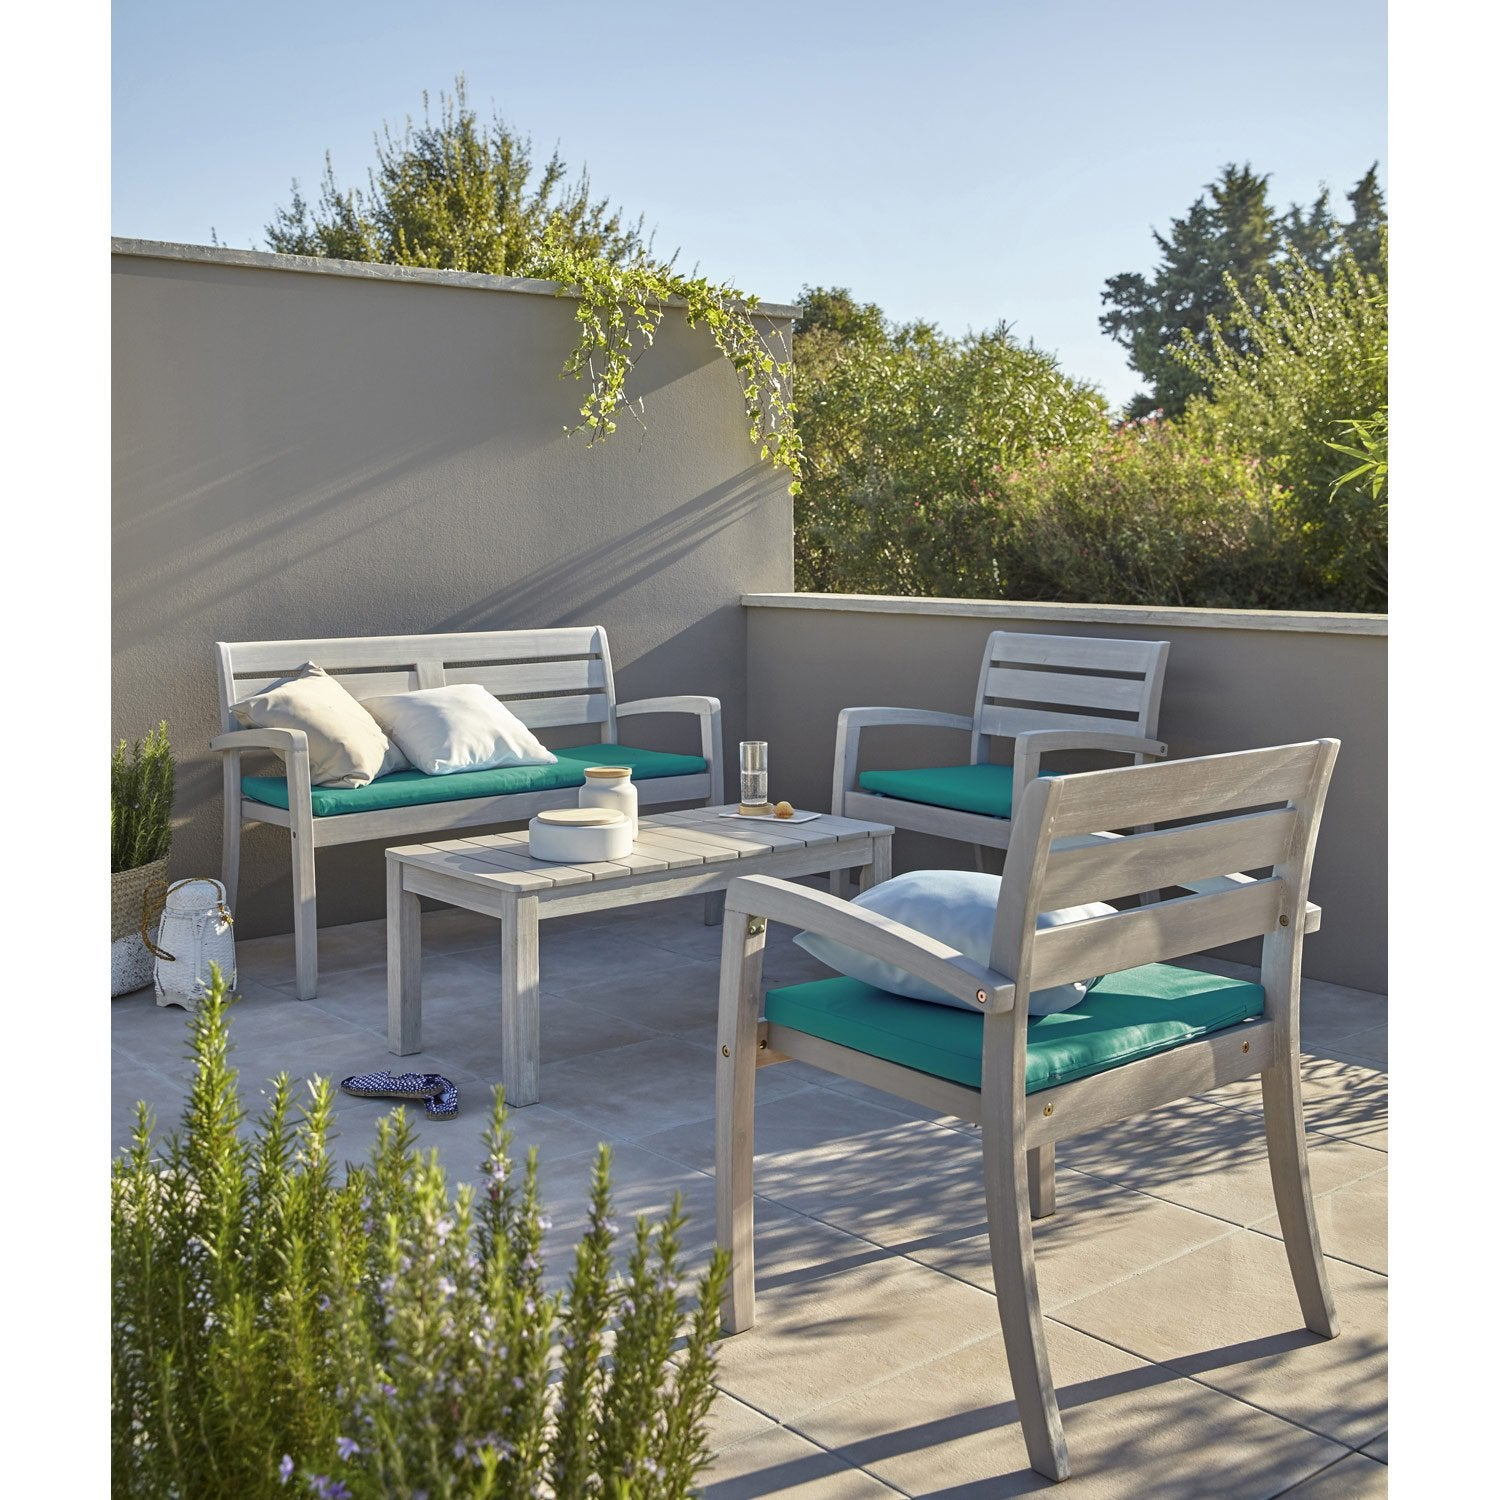 Salon de jardin portofino bois naturel 1 table 2 fauteuils 1 banc leroy - Leroy merlin table jardin ...